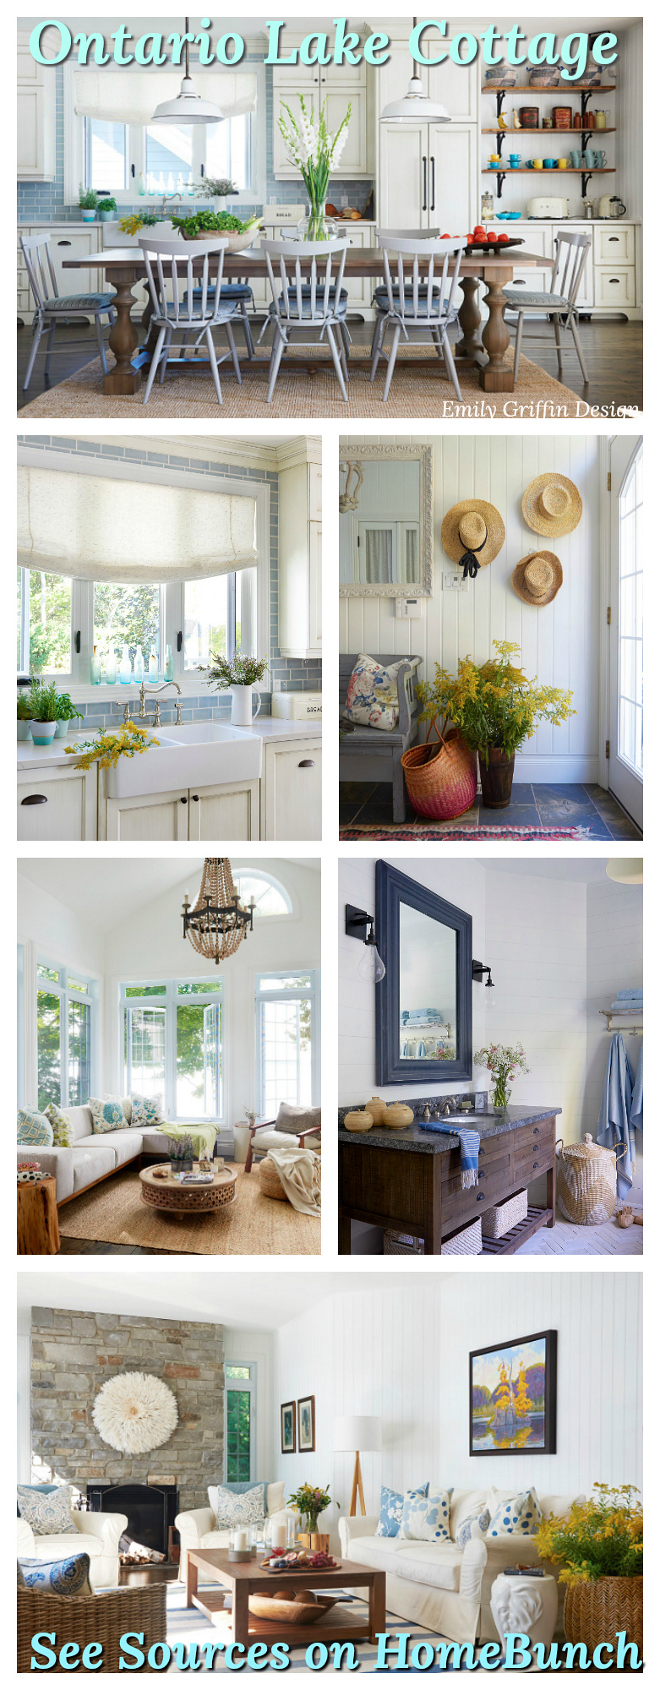 Coastal Farmhouse Lake Cottage Sources on Home Bunch